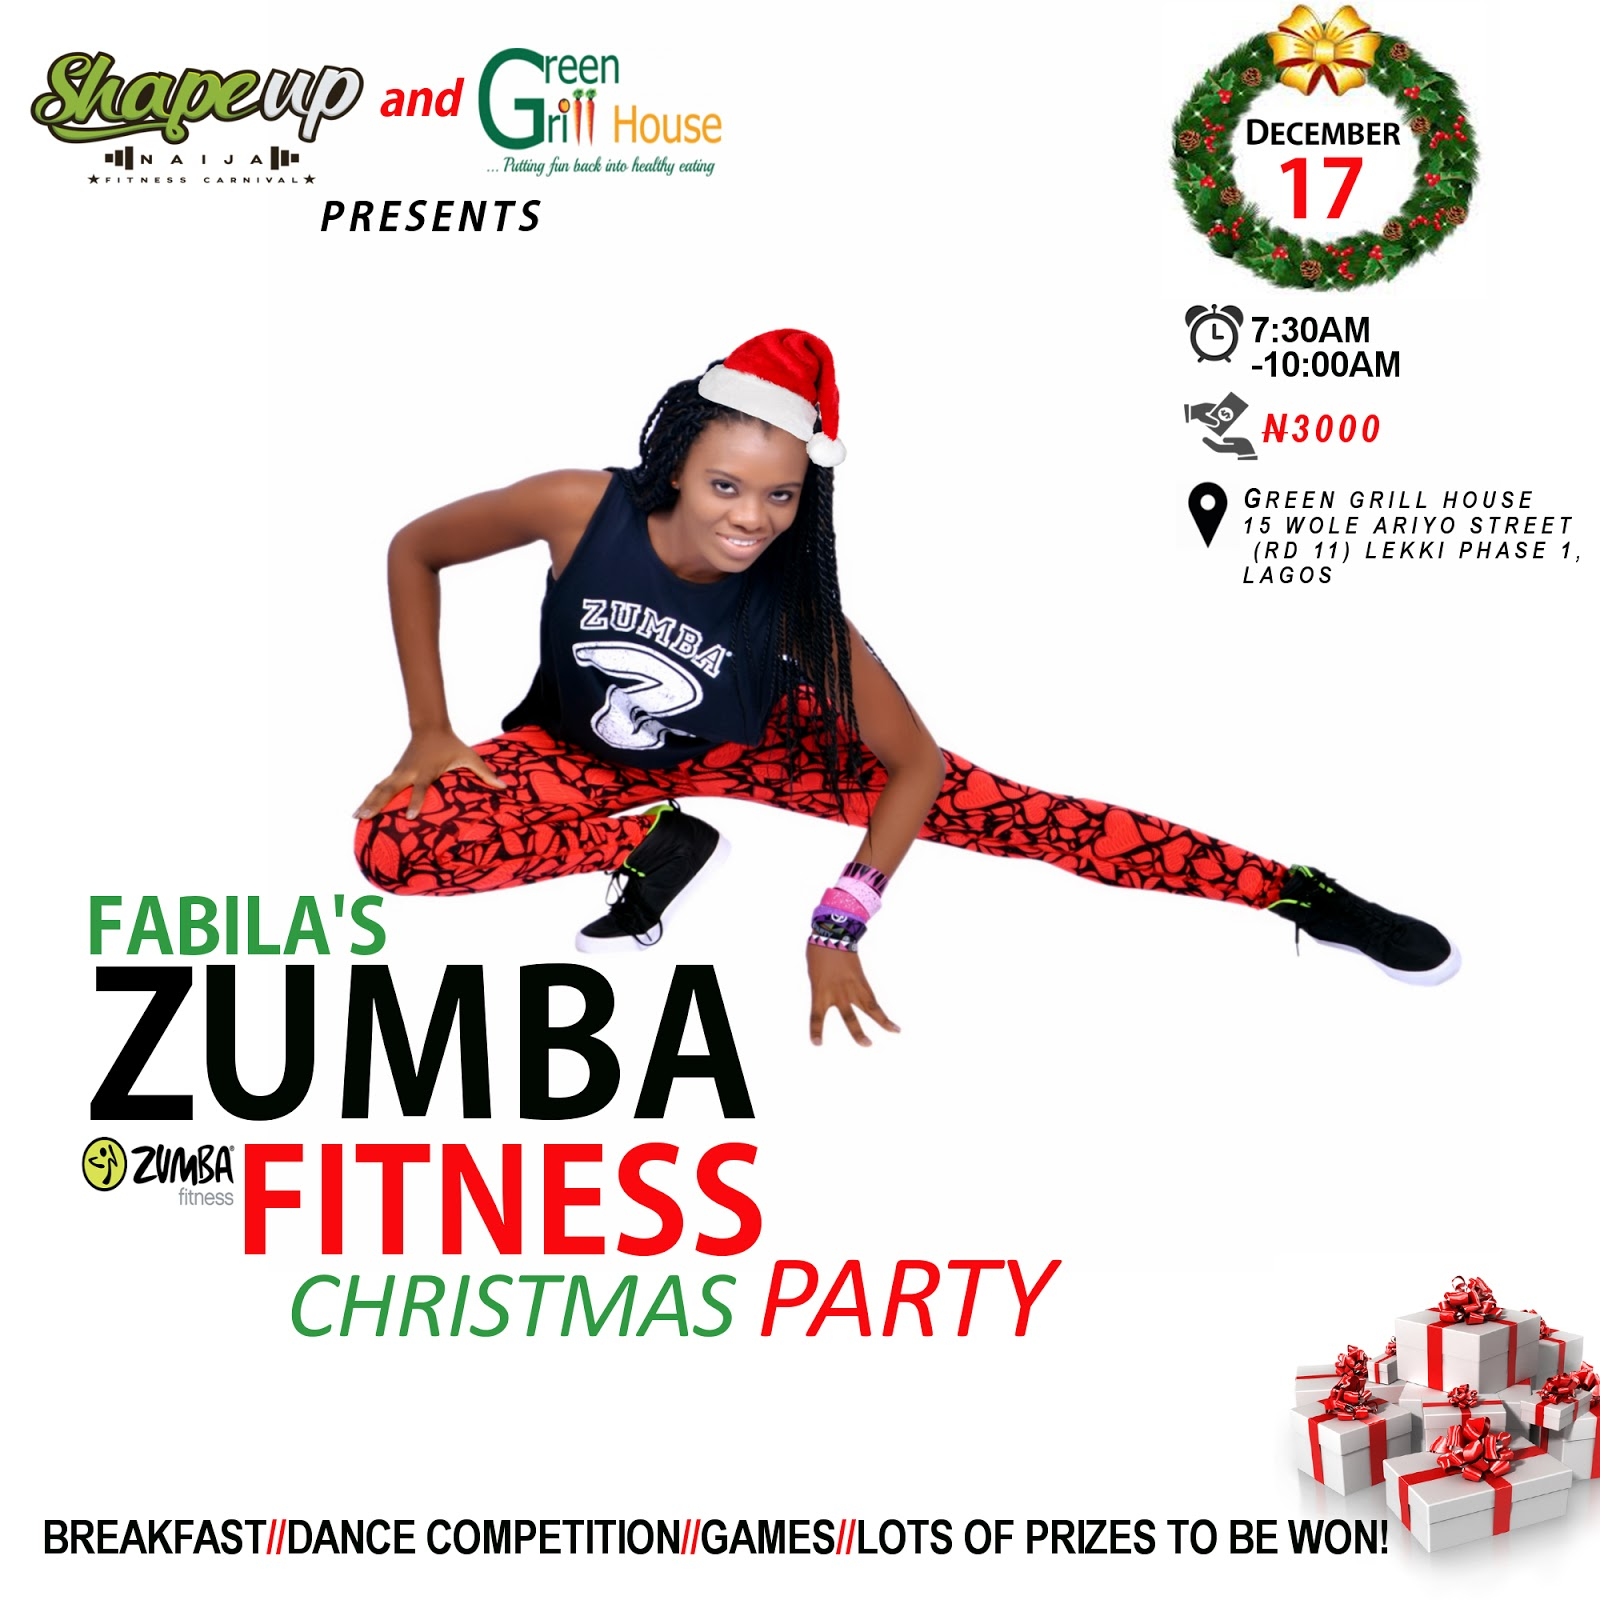 Fabila's Fitness Club: LET'S PARTY THIS WEEKEND